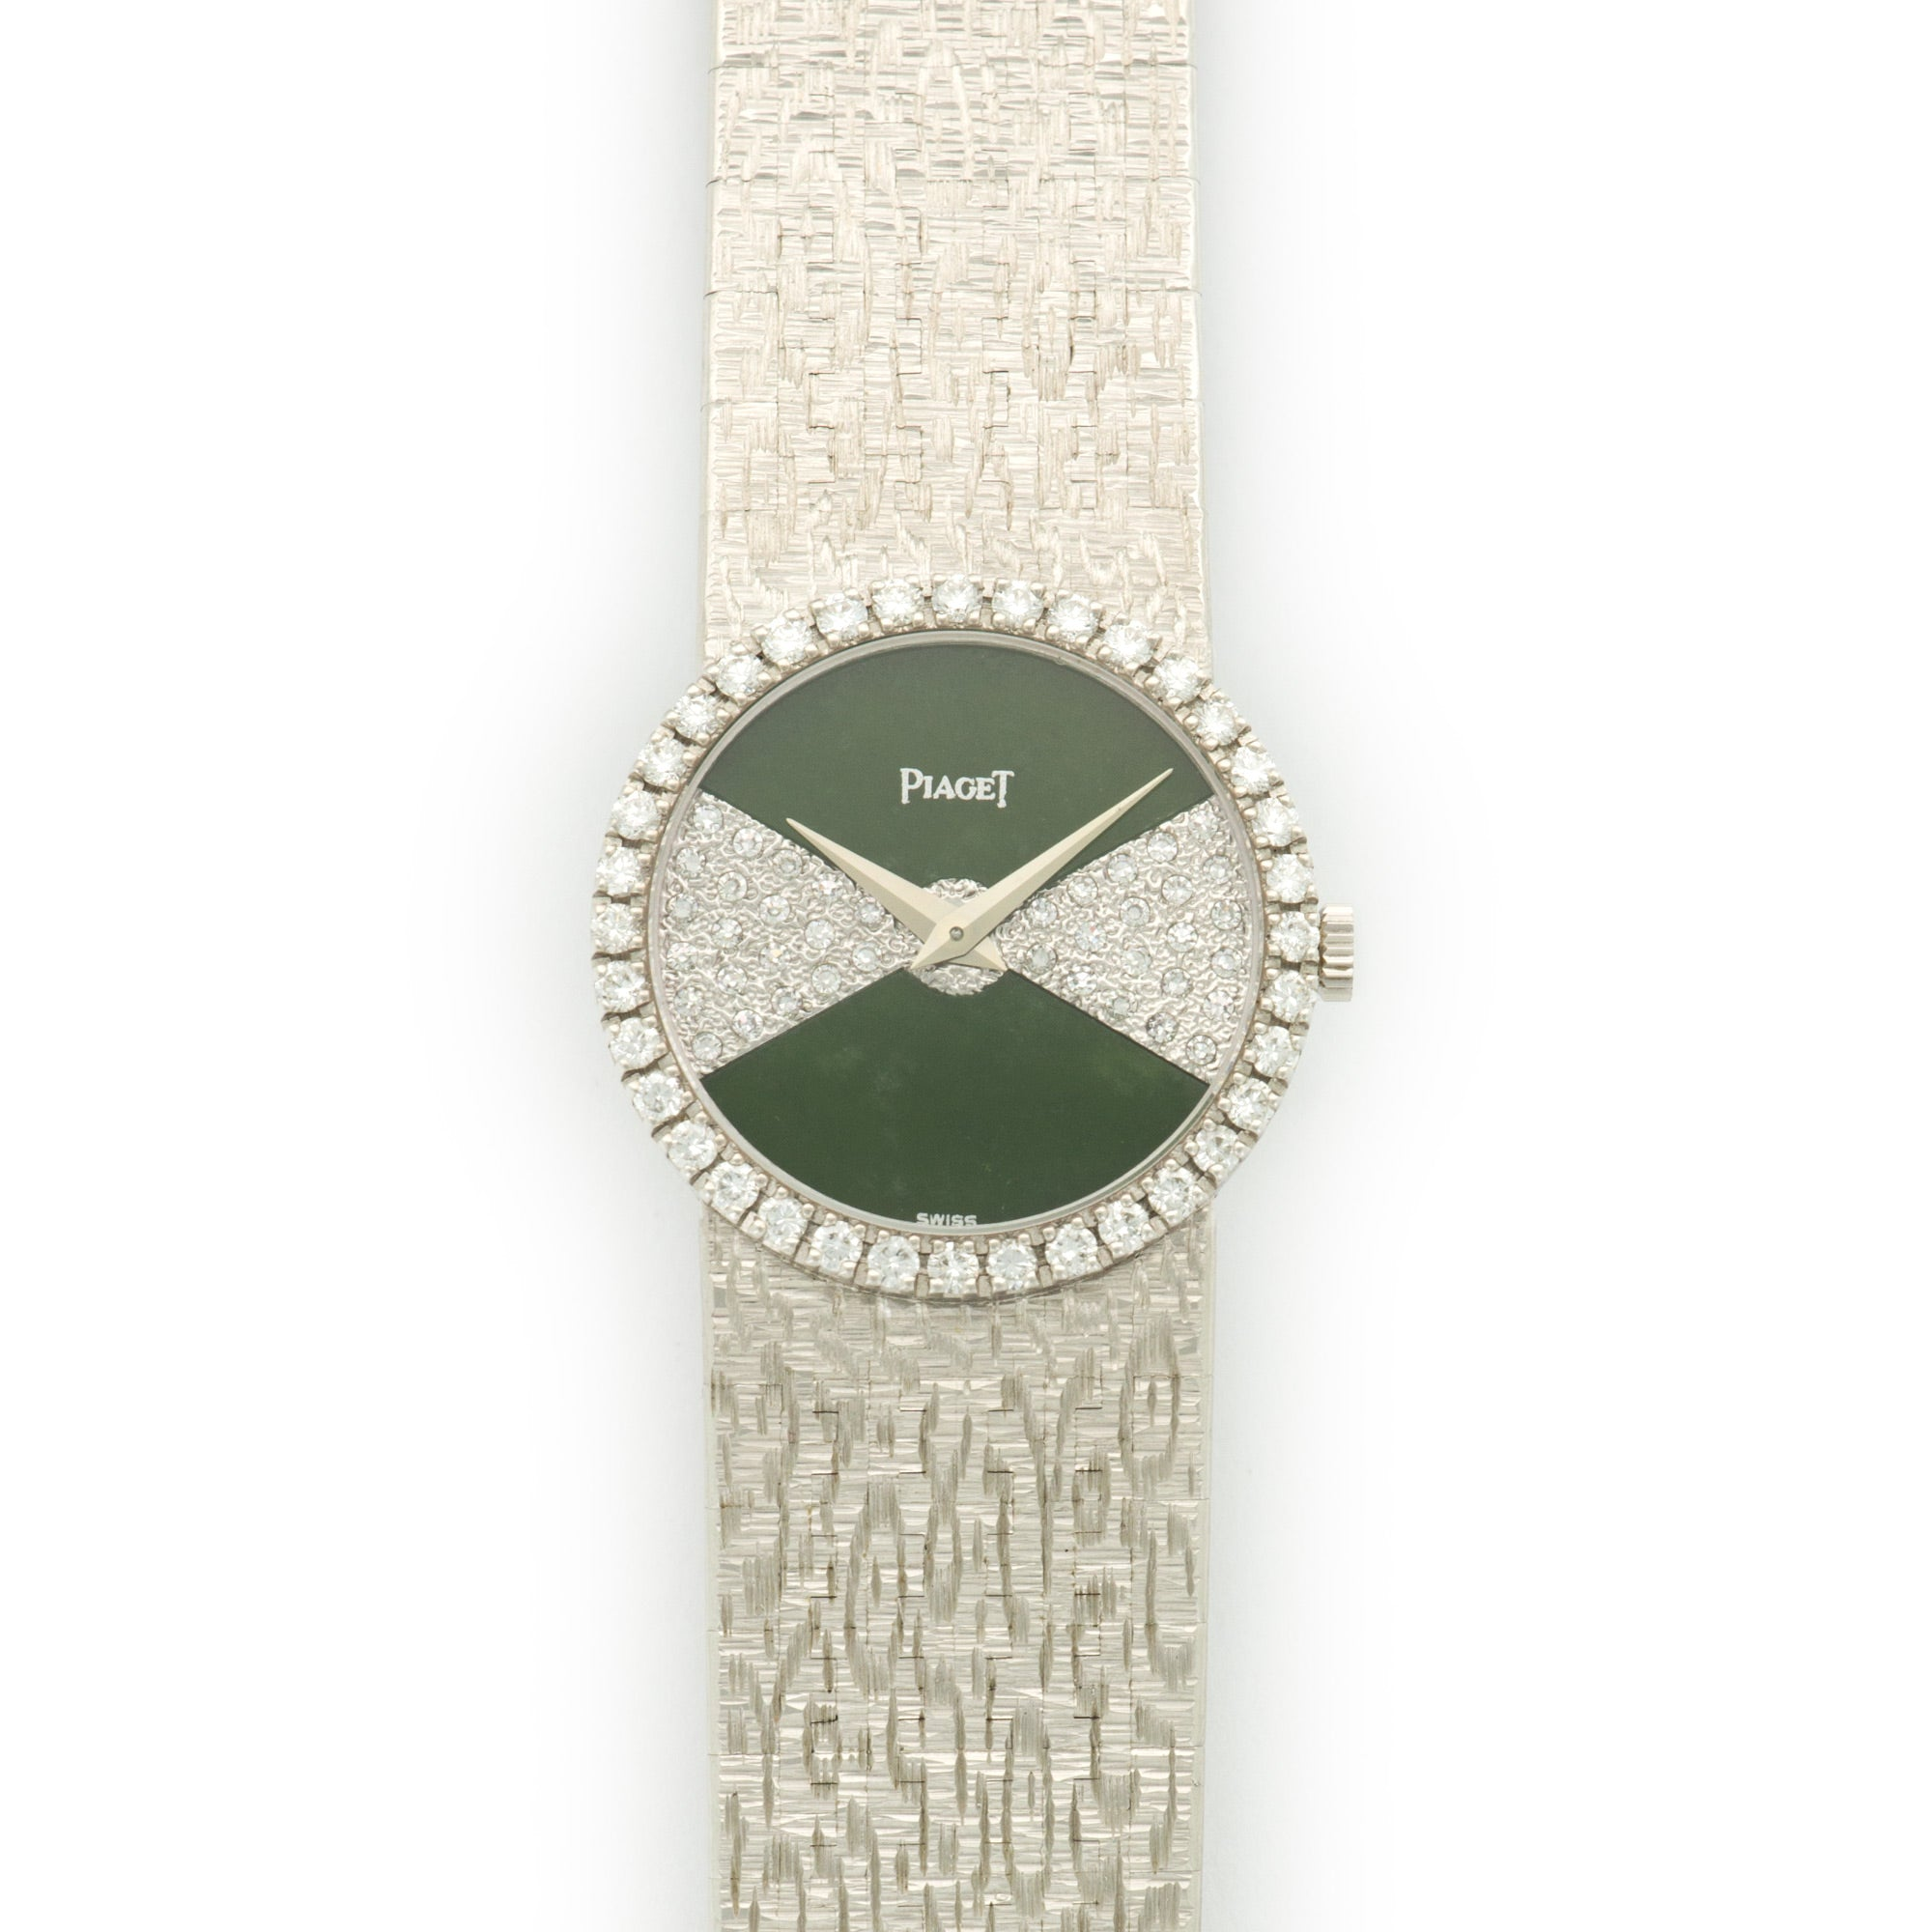 Piaget Vintage 9706 18k WG  Overall Mint Original Condition Ladies 18k WG Pave Diamond and Nephrite Jade 25mm Manual 1970s White Gold Bracelet (177mm) Handmade Leather Travel Pouch